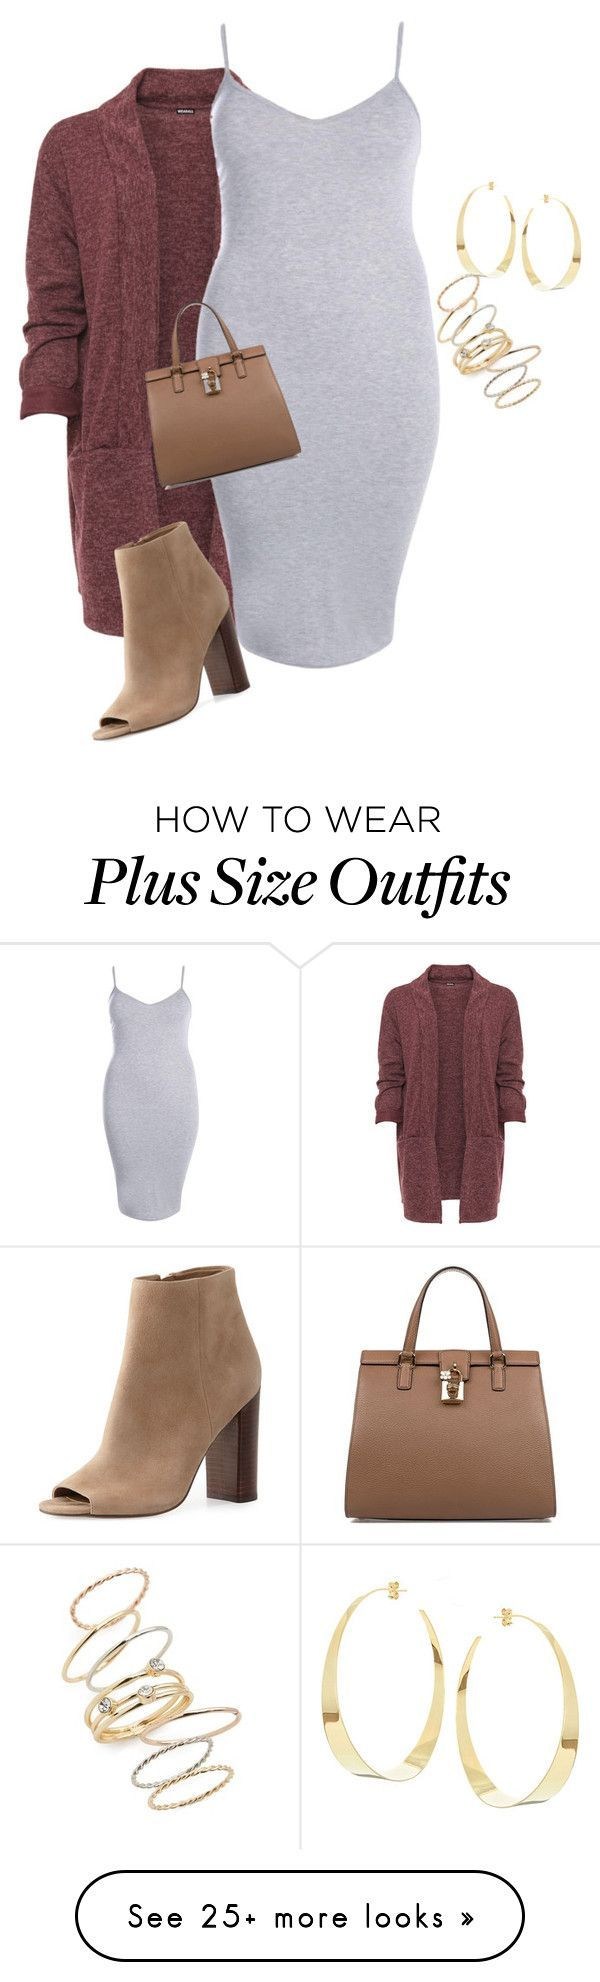 """Plus size casual chic fall/winter look"" by xtrak on Polyvore featuring WearAll, Boohoo, Sam Edelman, Dolce&Gabbana, BP. and Lana"